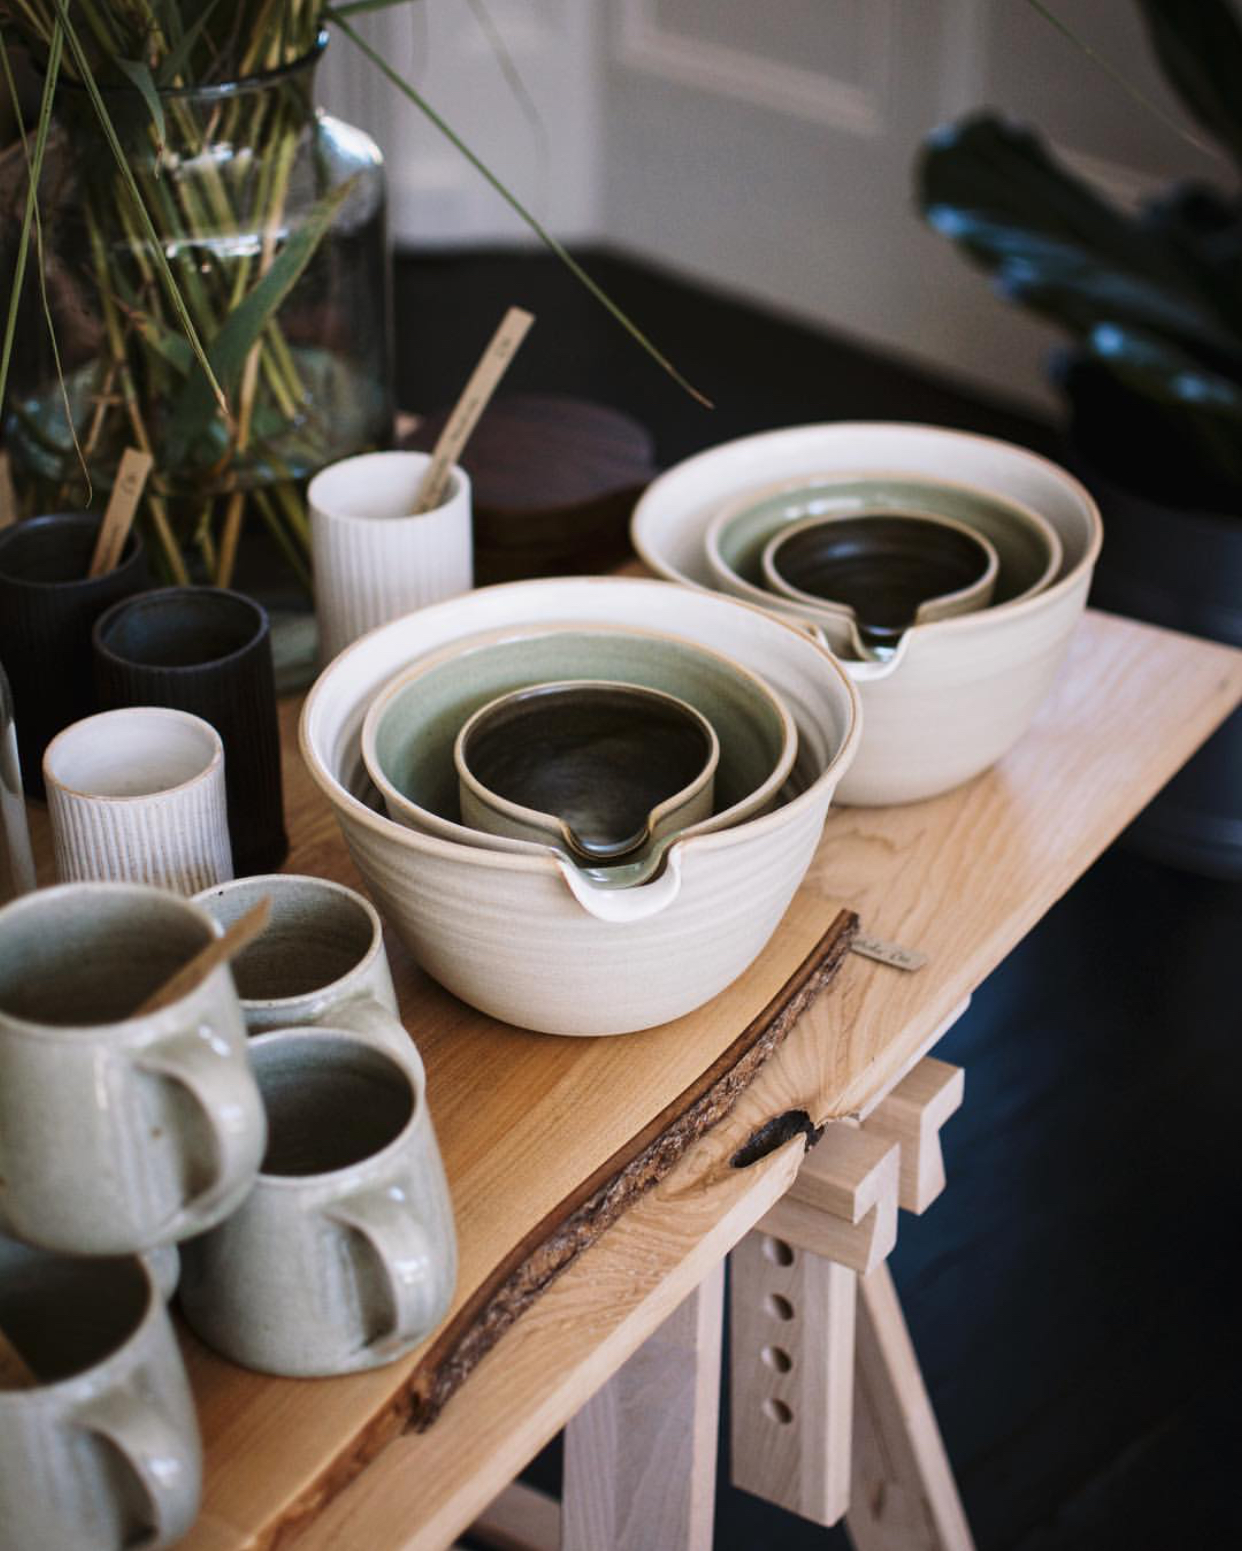 Pouring bowls for sale at Midgley Green, Clevedon. Photograph by Midgley Green.